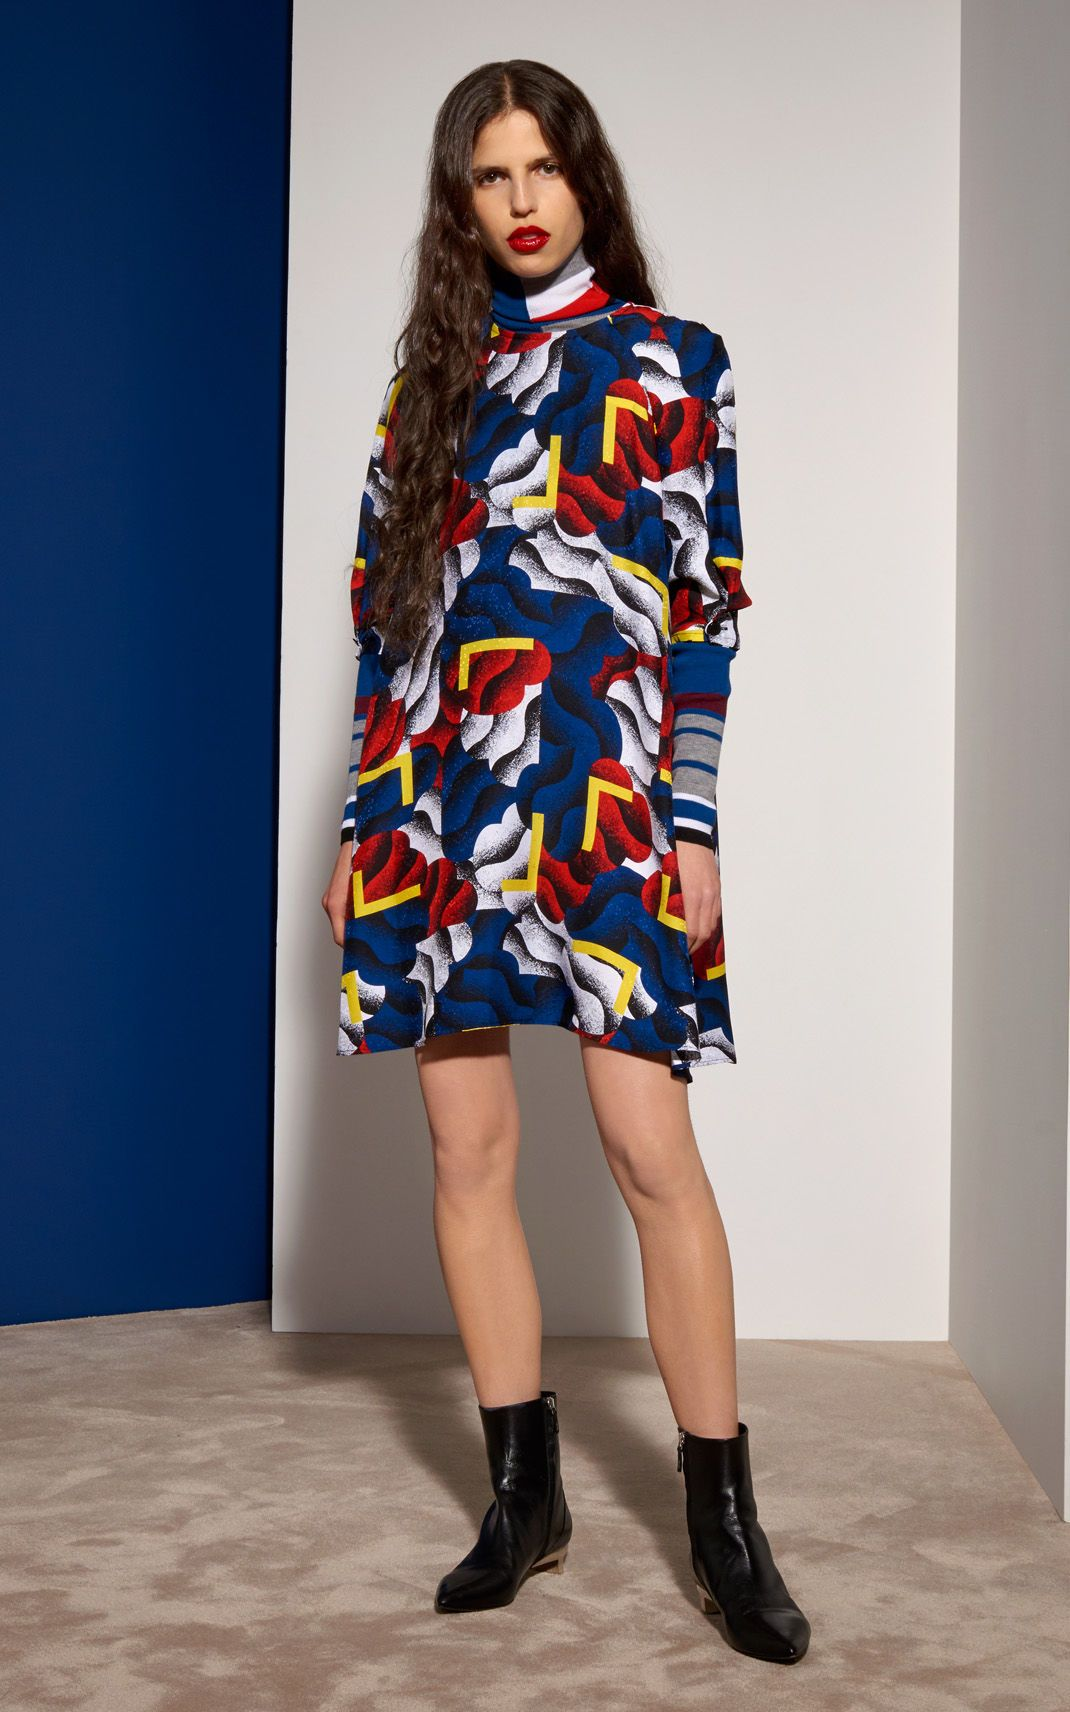 Robe Clouds and Corners Femme Kenzo   Kenzo.com   MODE   Pinterest ... acda1f0c880